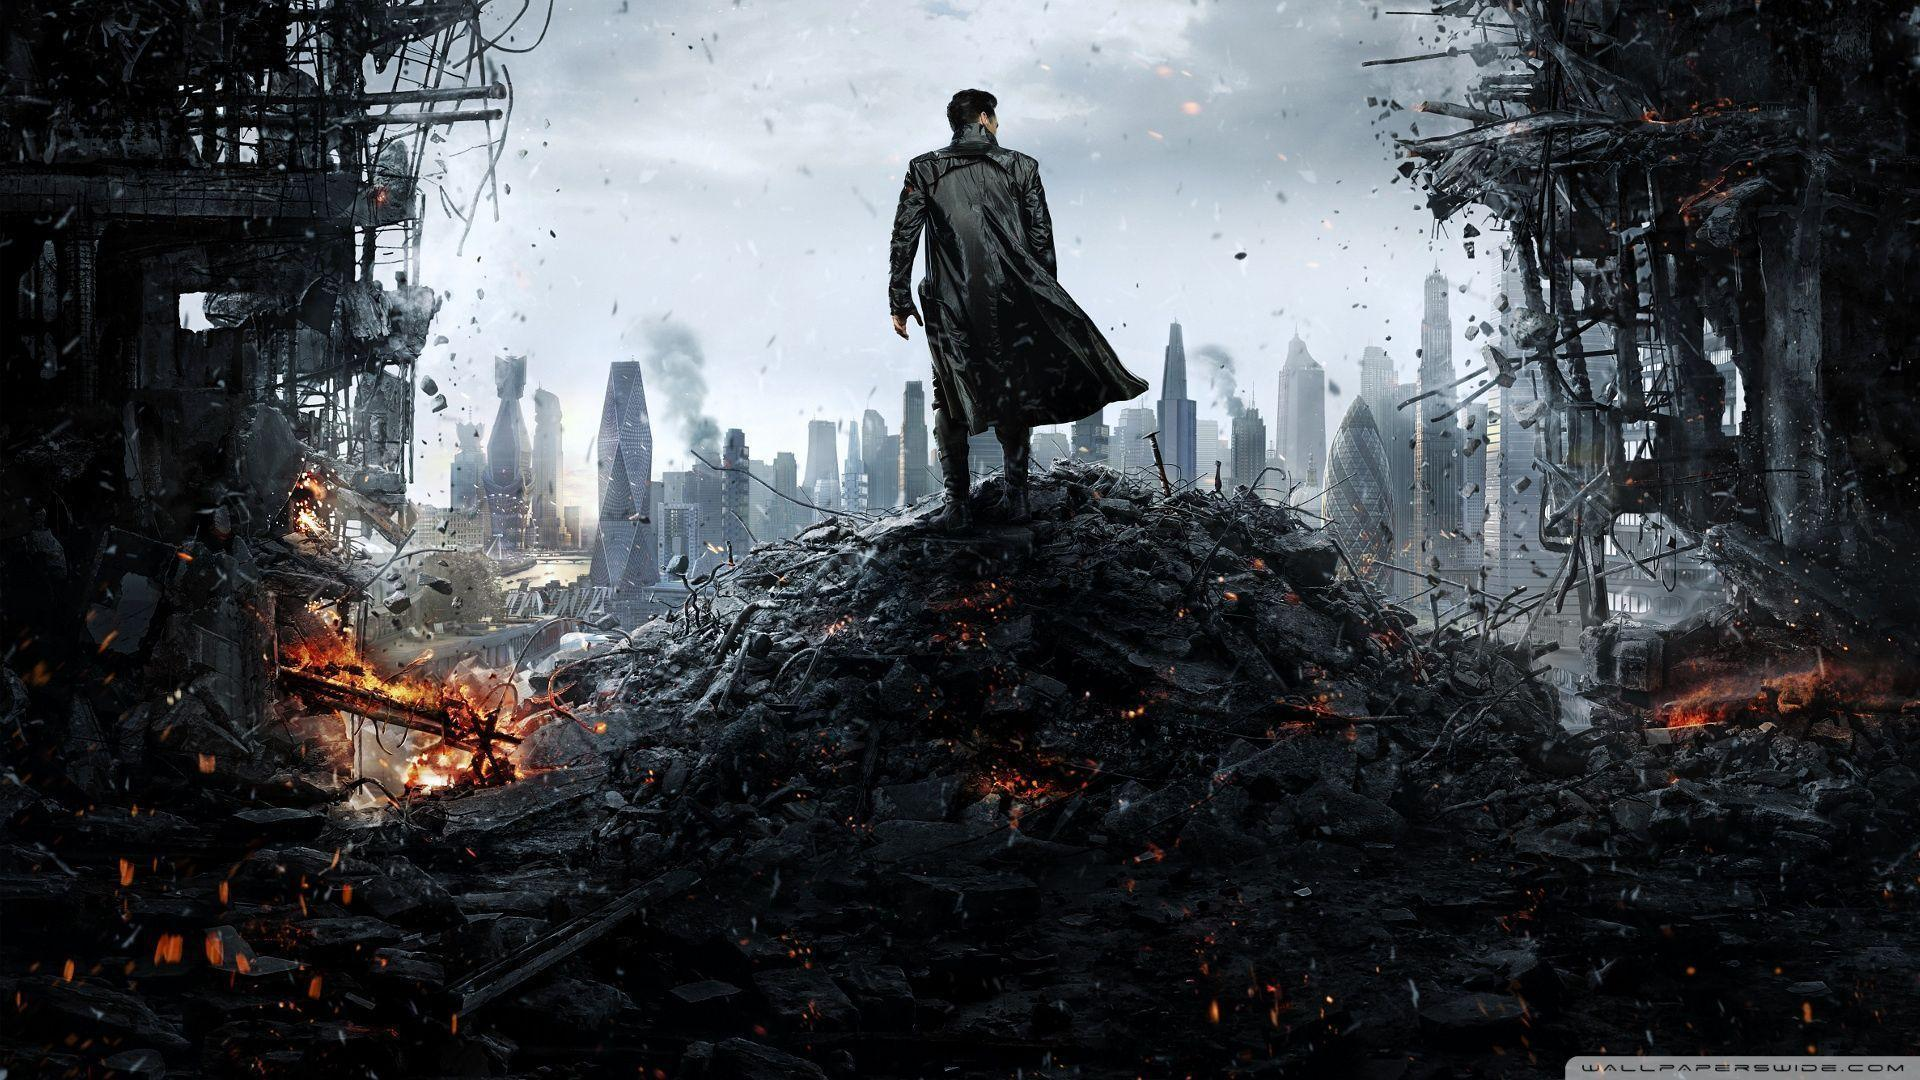 Fonds d&Star Trek Into Darkness : tous les wallpapers Star